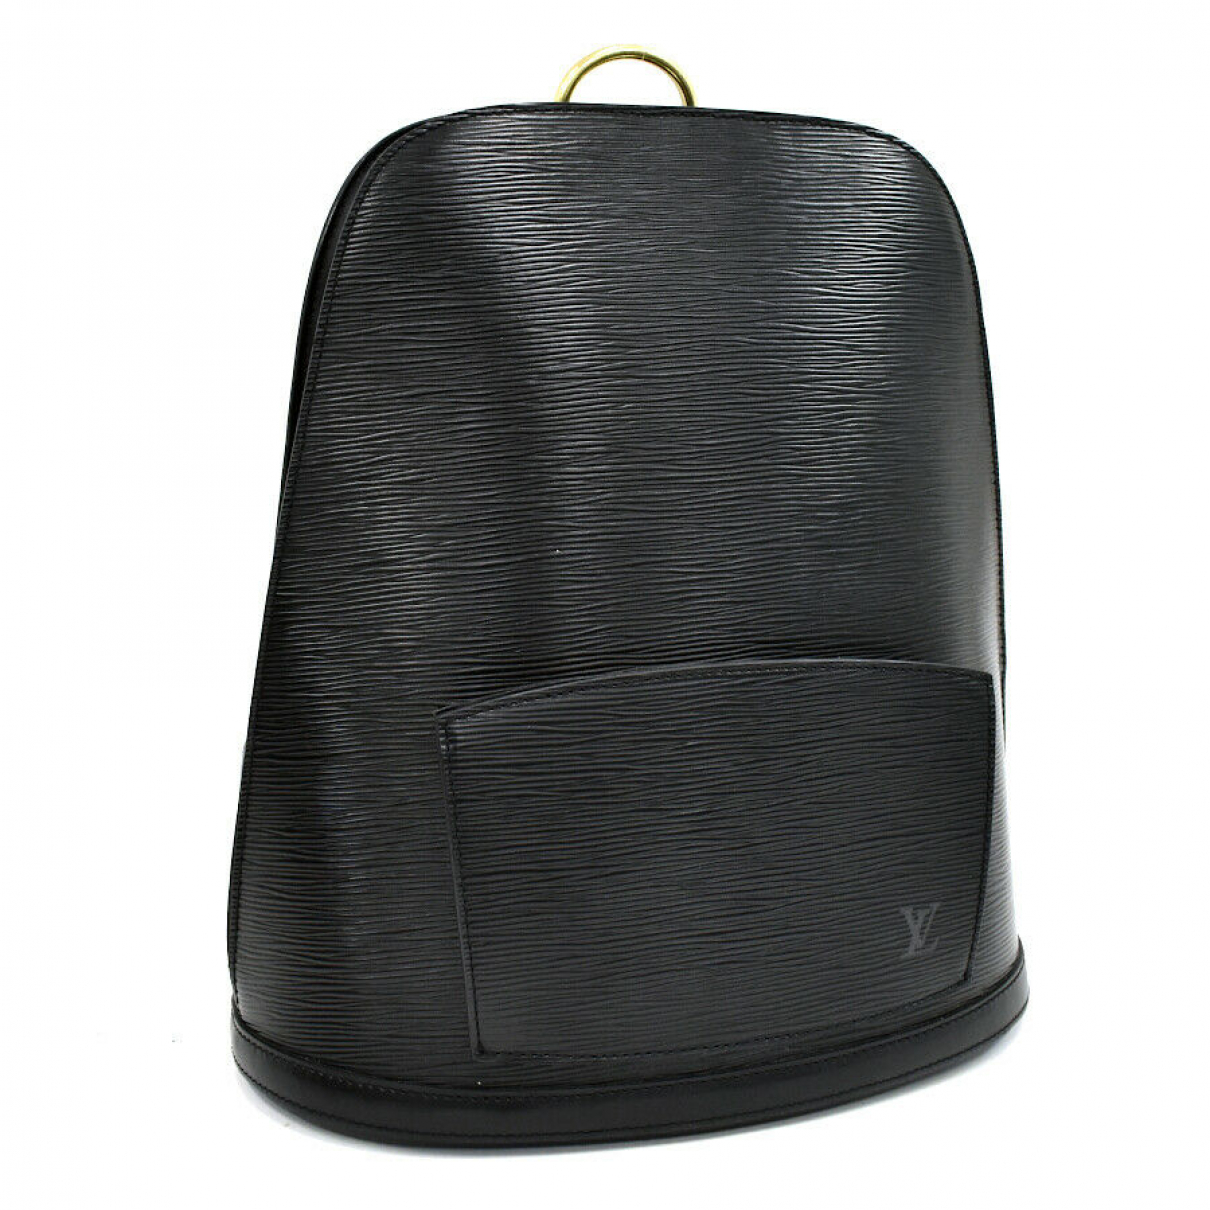 Louis Vuitton N Black Leather backpack for Women N